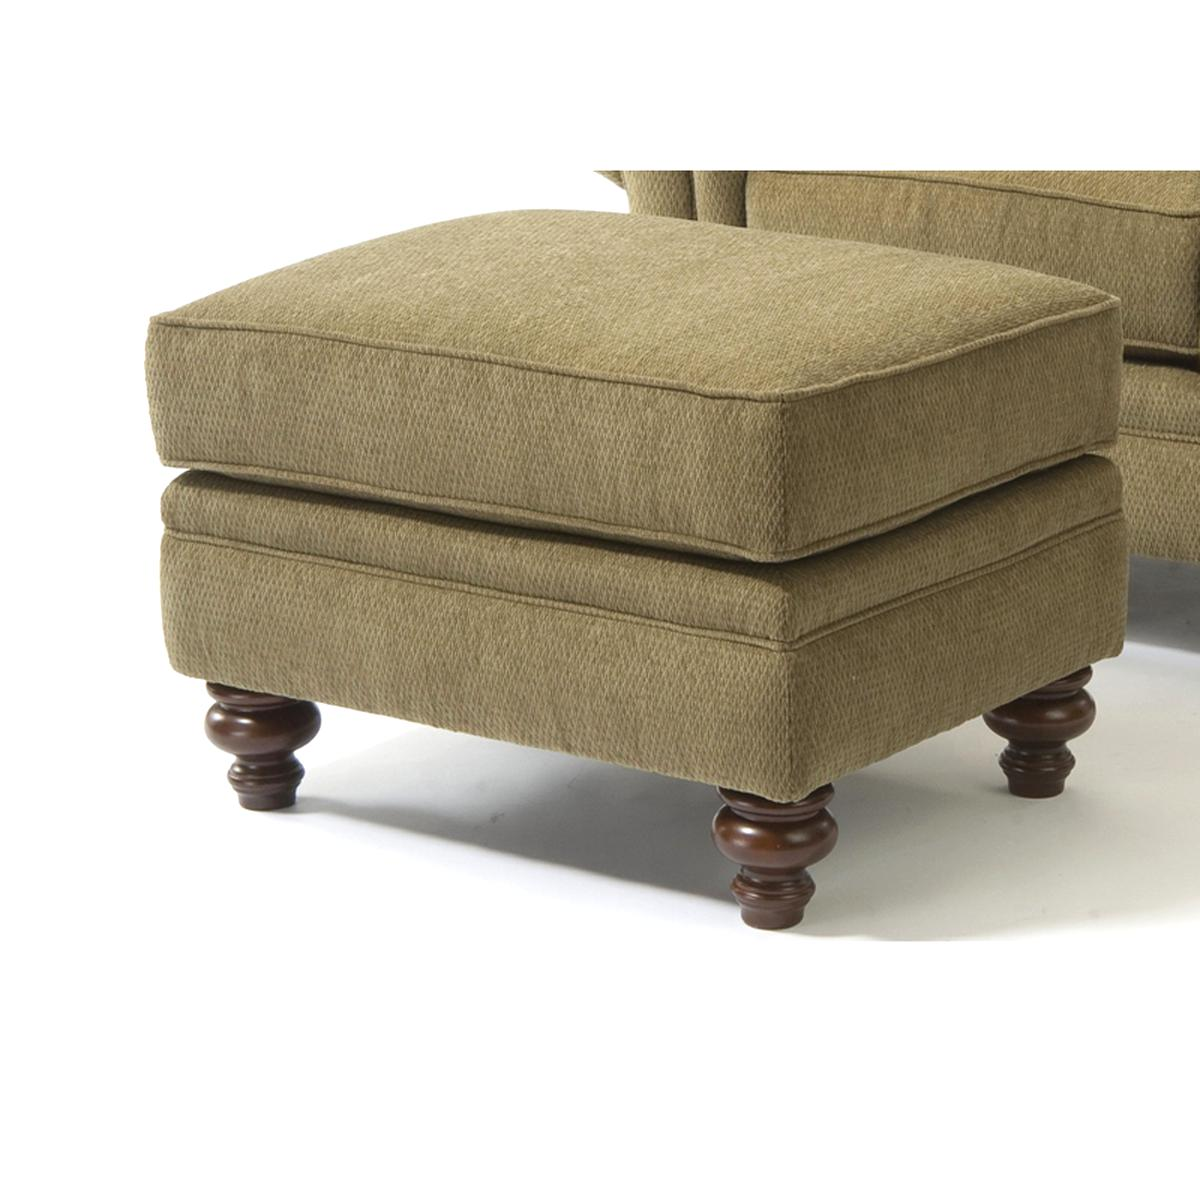 Strange Broyhill Ottoman For Sale Only 2 Left At 60 Dailytribune Chair Design For Home Dailytribuneorg